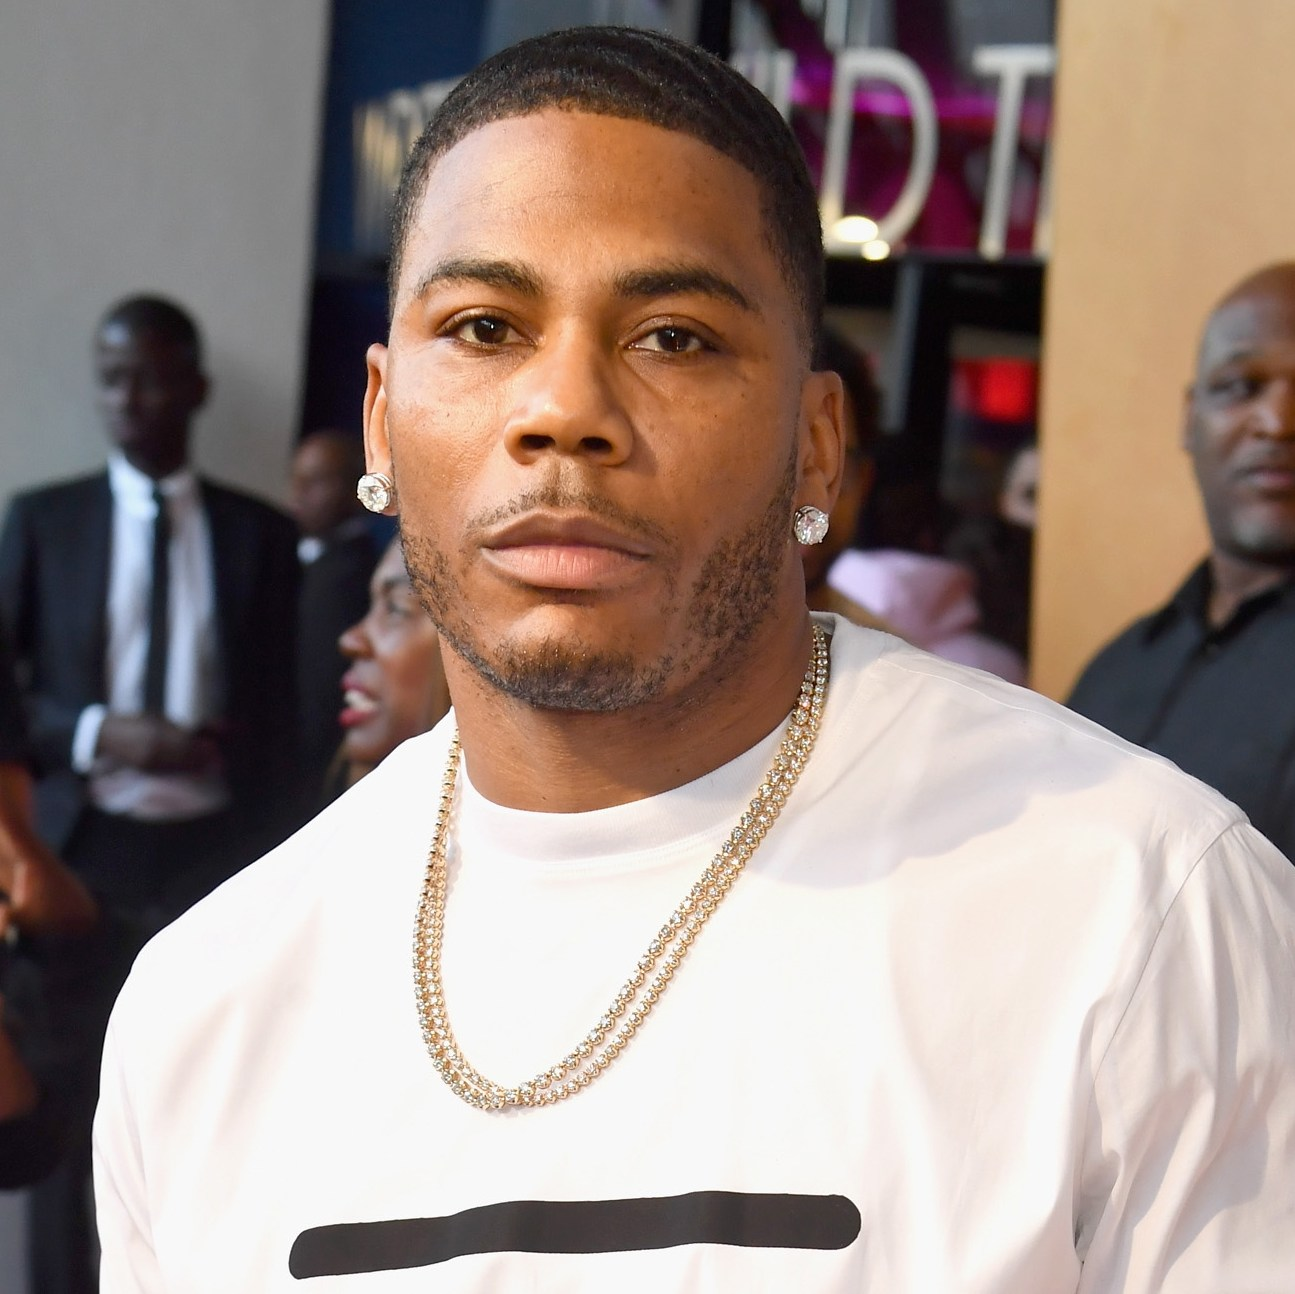 Rapper Nelly Criminal Investigation in England for Alleged Sexual Assault